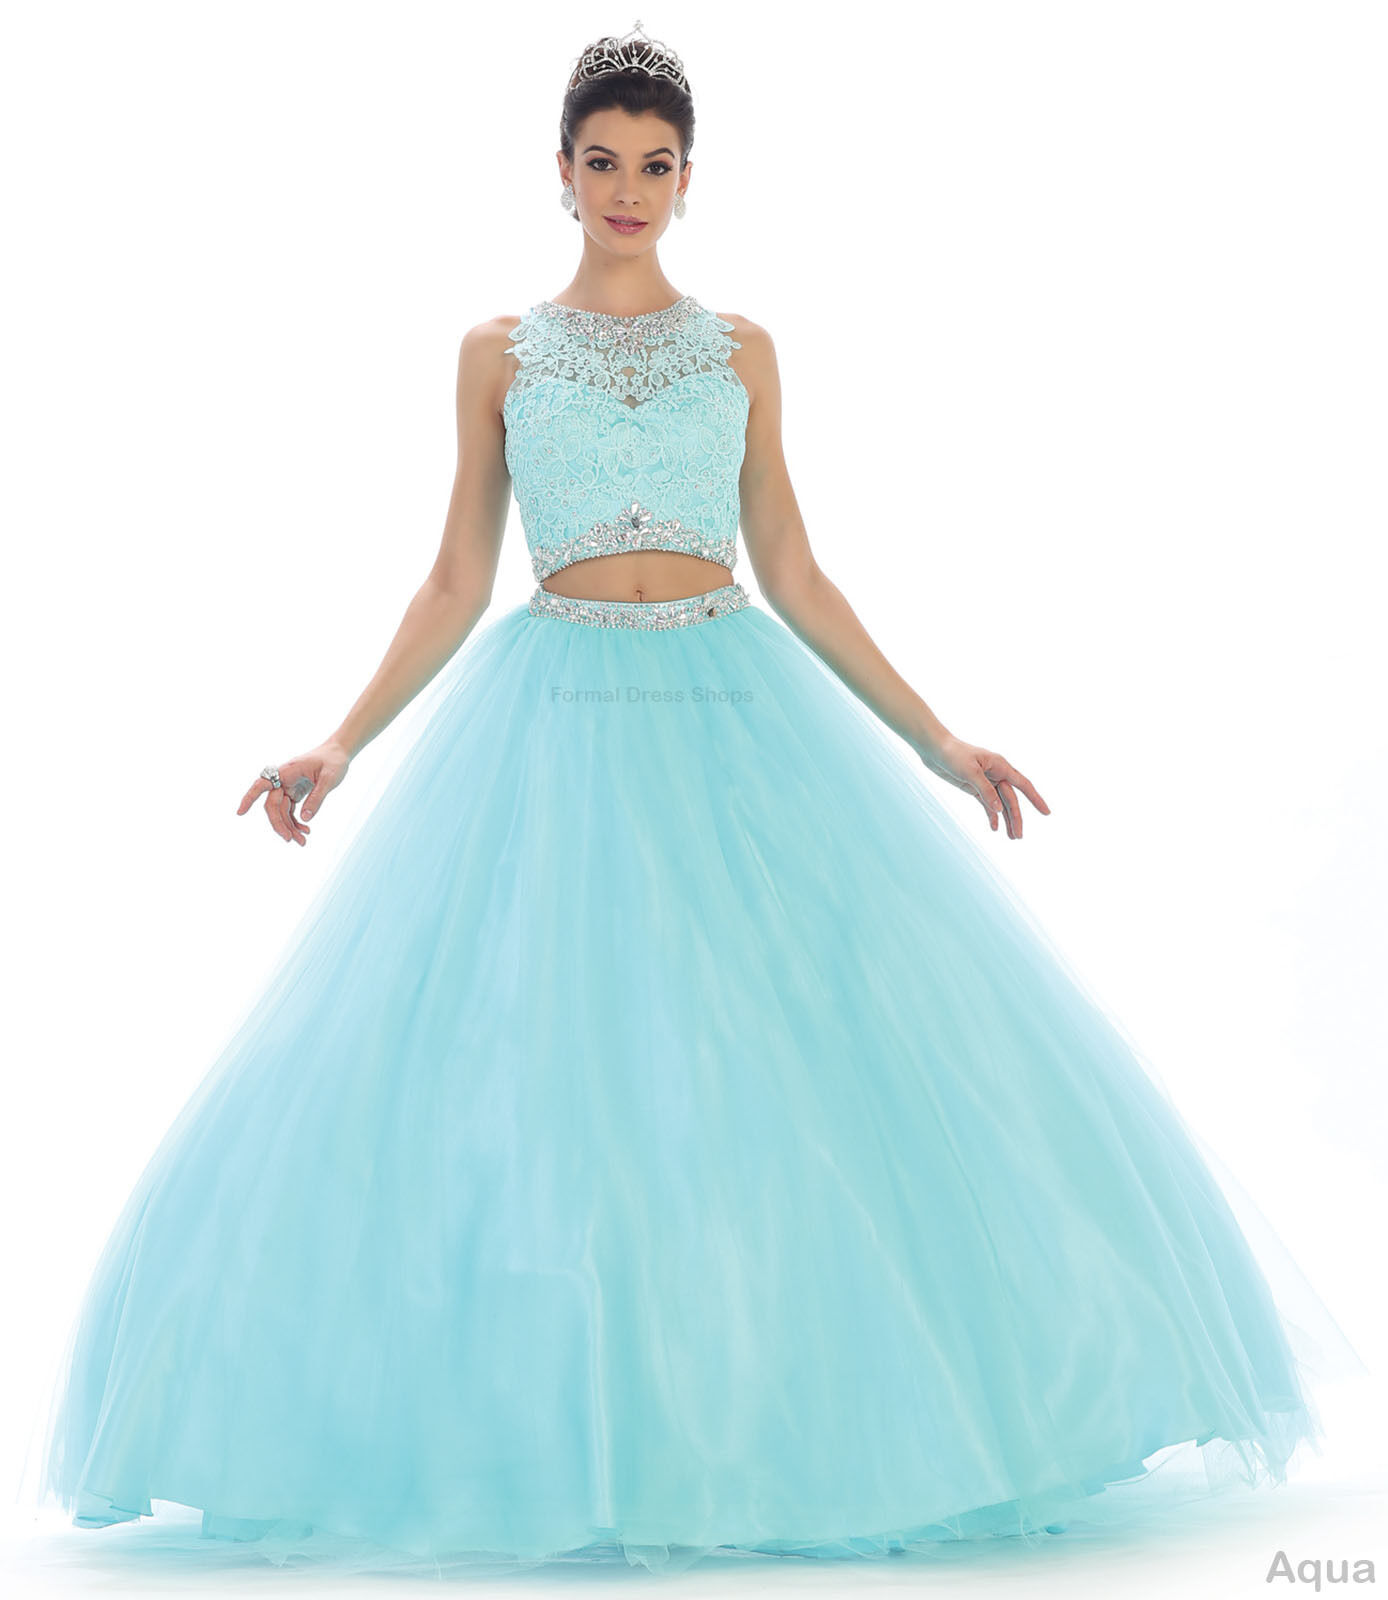 2 PIECE QUINCEANERA DRESS SWEET 16 PAGEANT PROM MILITARY